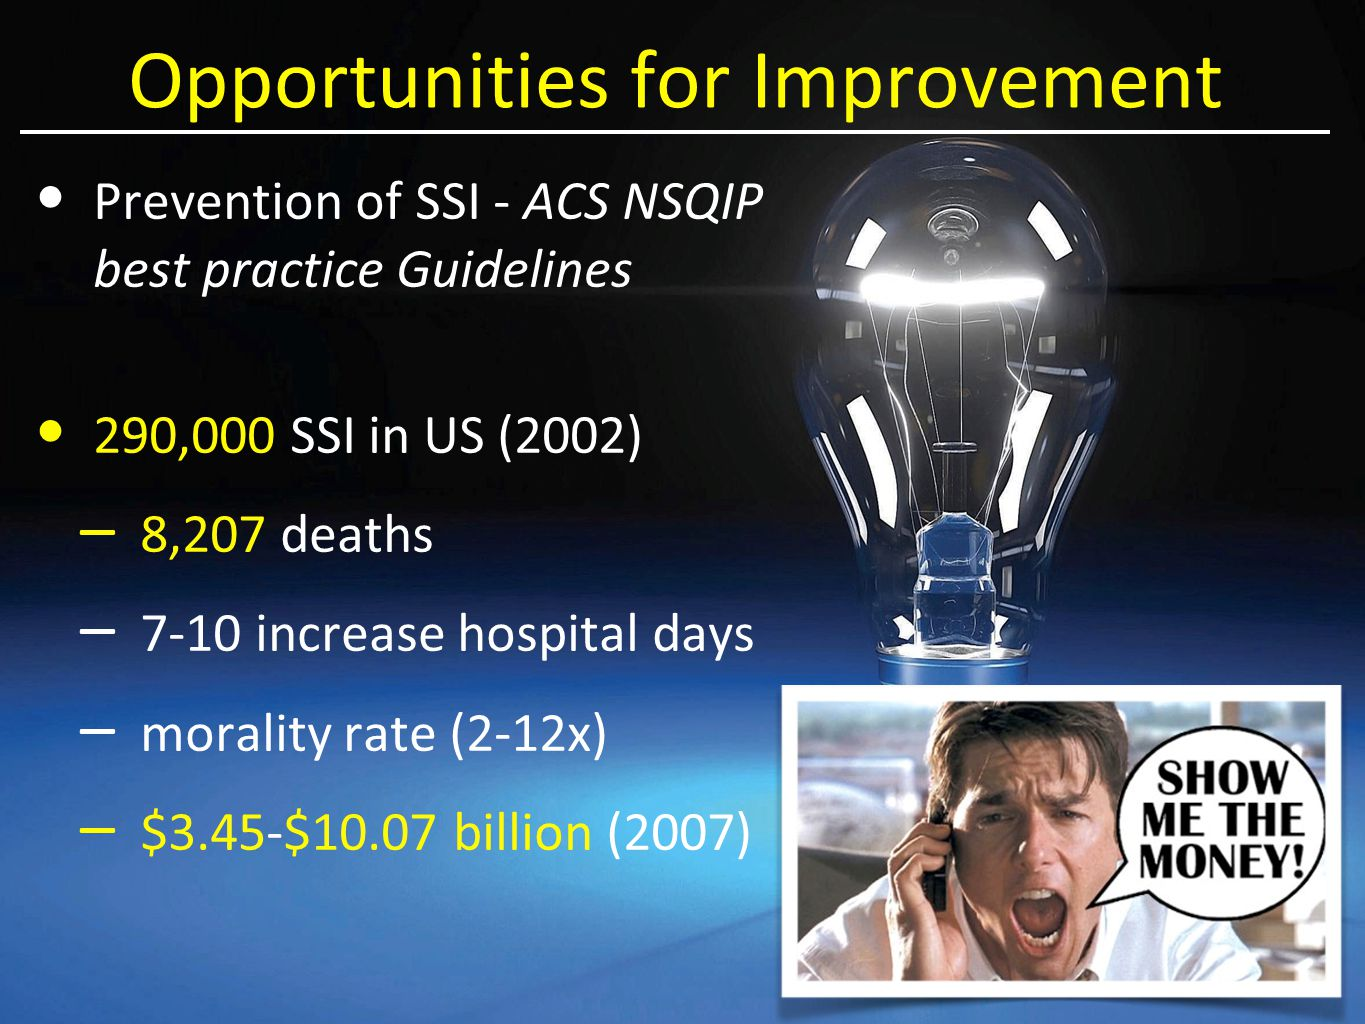 Opportunities for Improvement Prevention of SSI - ACS NSQIP best practice Guidelines 290,000 SSI in US (2002) – 8,207 deaths – 7-10 increase hospital days – morality rate (2-12x) – $3.45-$10.07 billion (2007)